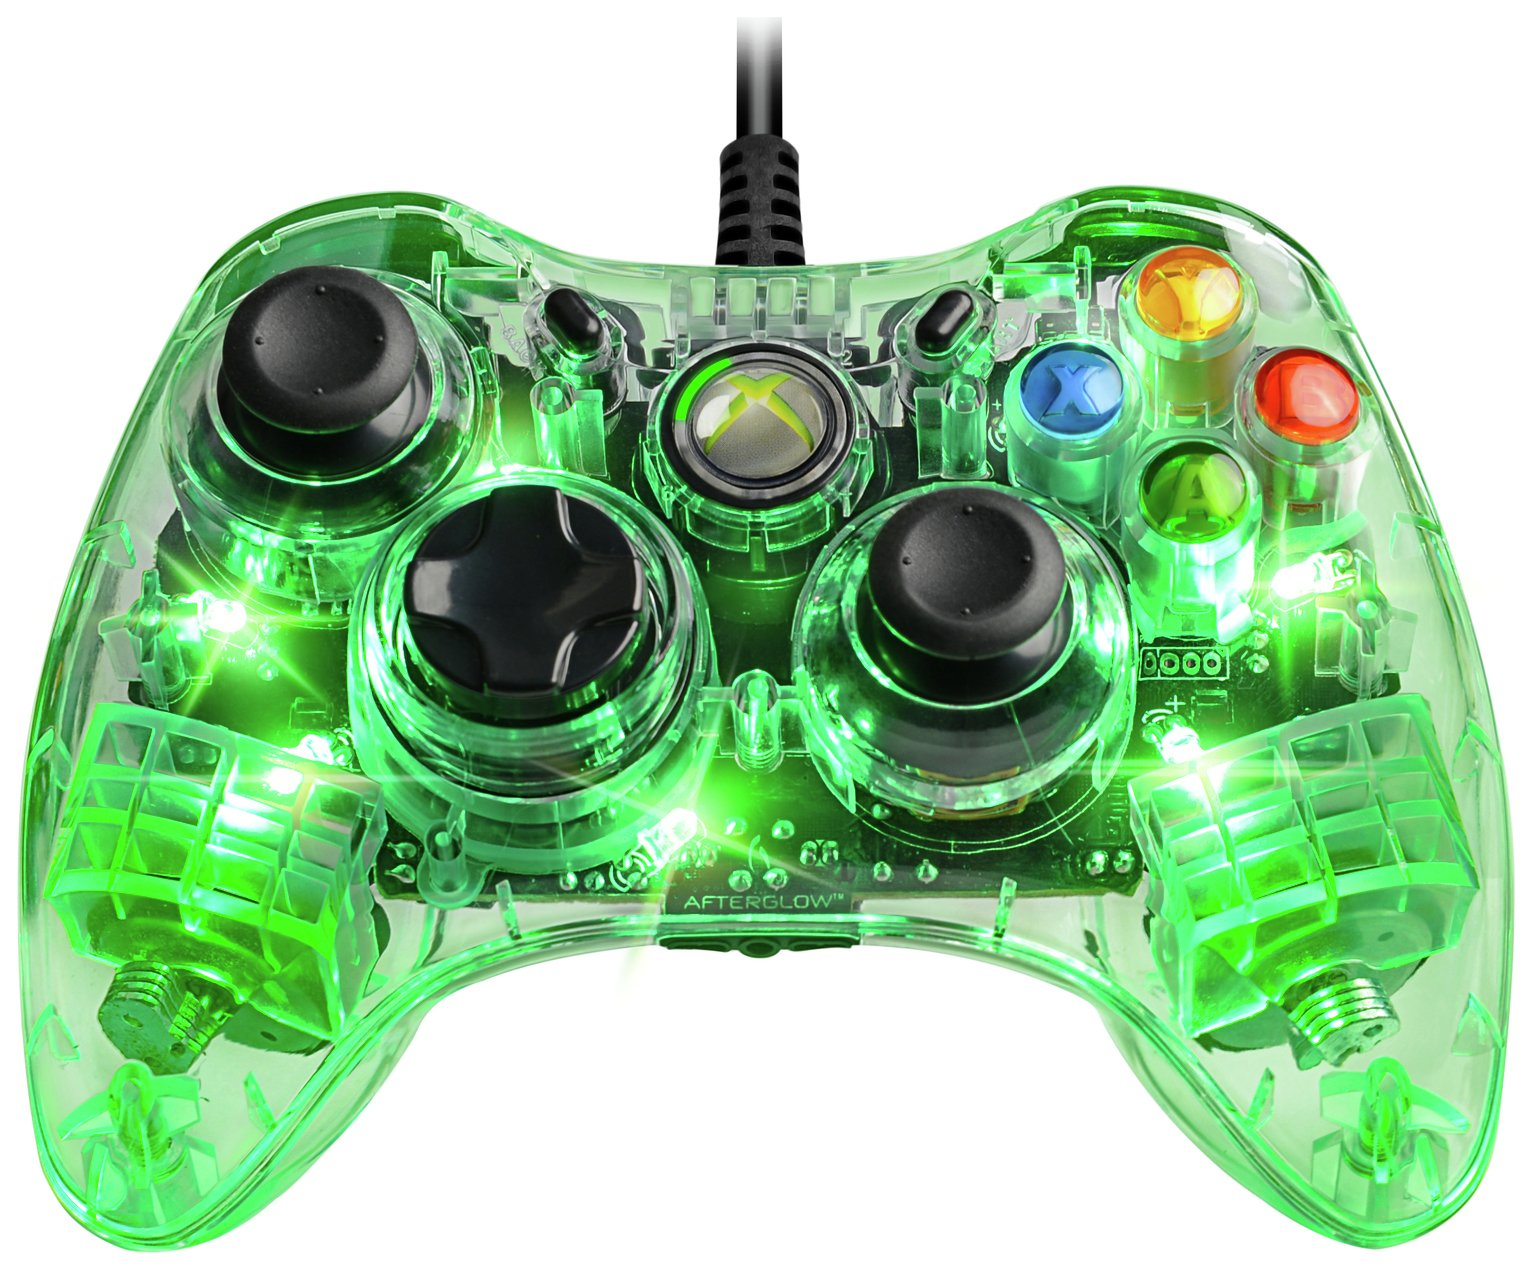 Afterglow - Xbox 360 Wired Controller - Green